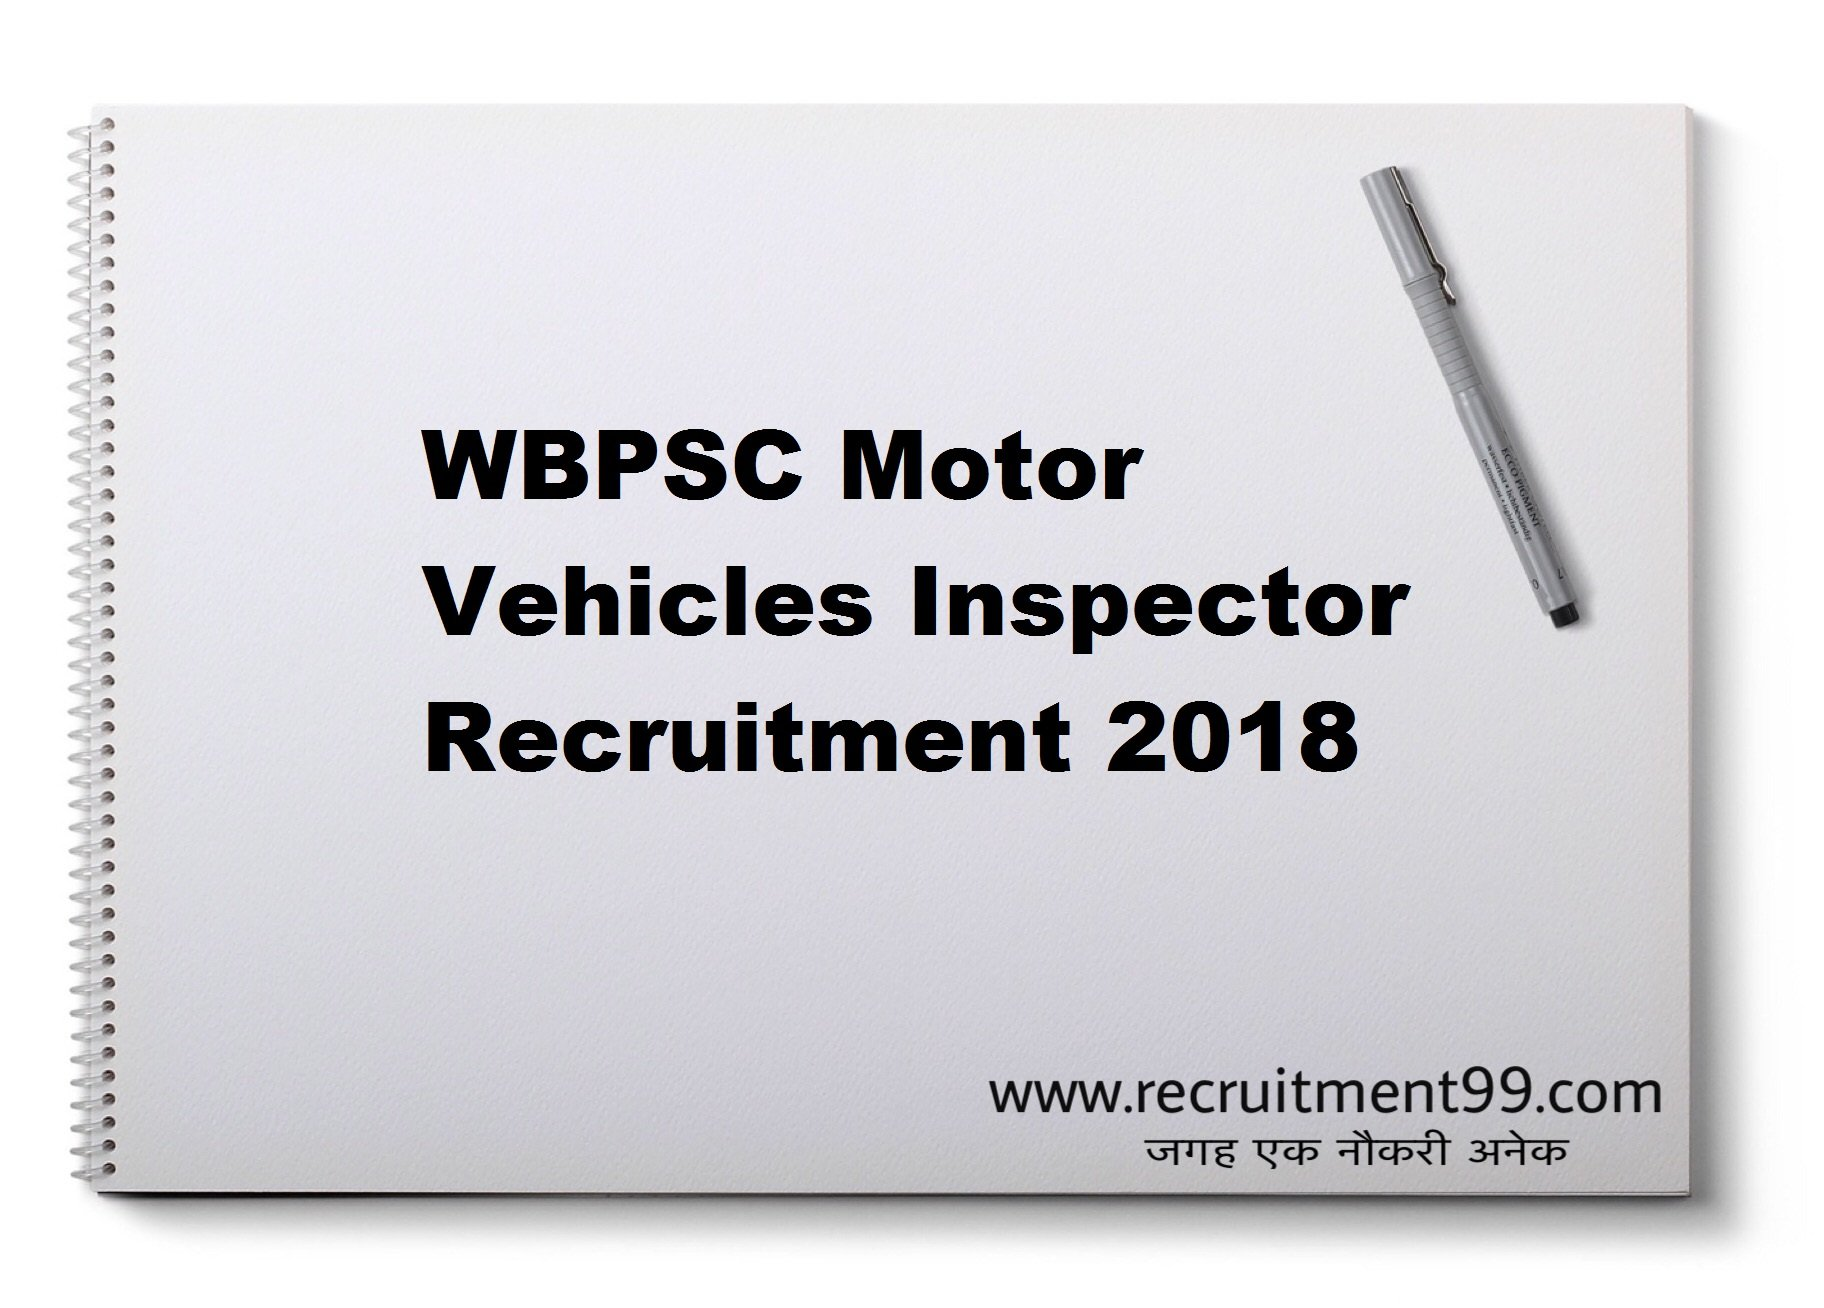 WBPSC Motor Vehicles Inspector Recruitment Admit Card Result 2018